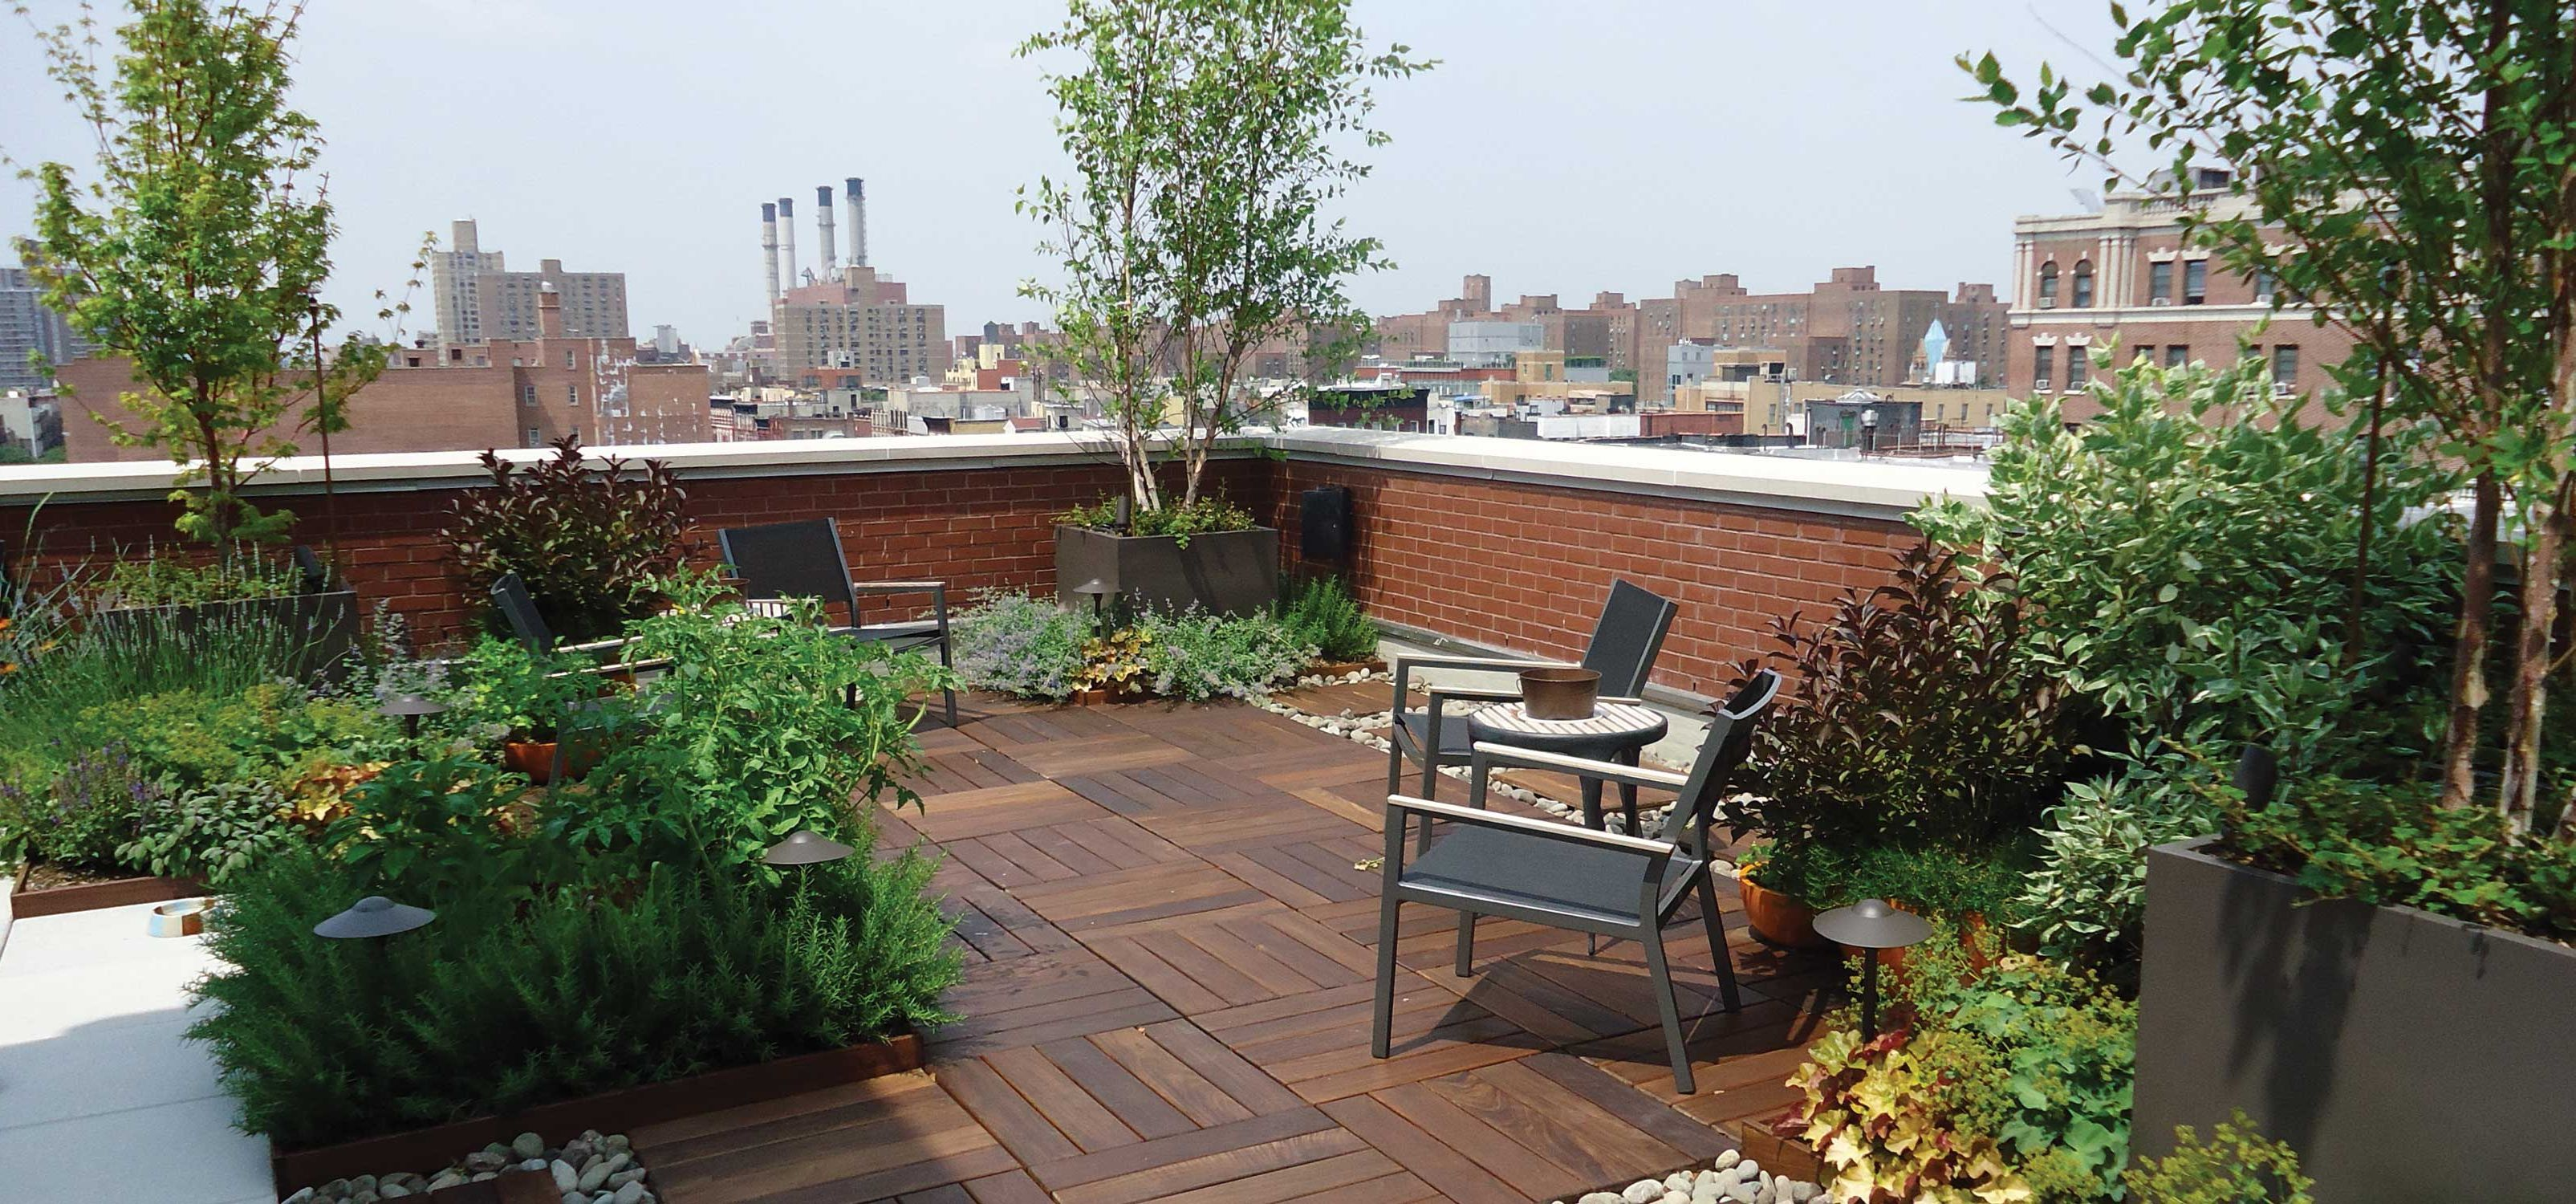 Outdoor beautiful cozy terrace garden picture interesting rooftop terrace garden design - Rooftop terrace beautiful and fresh rooftop decorating ideas ...